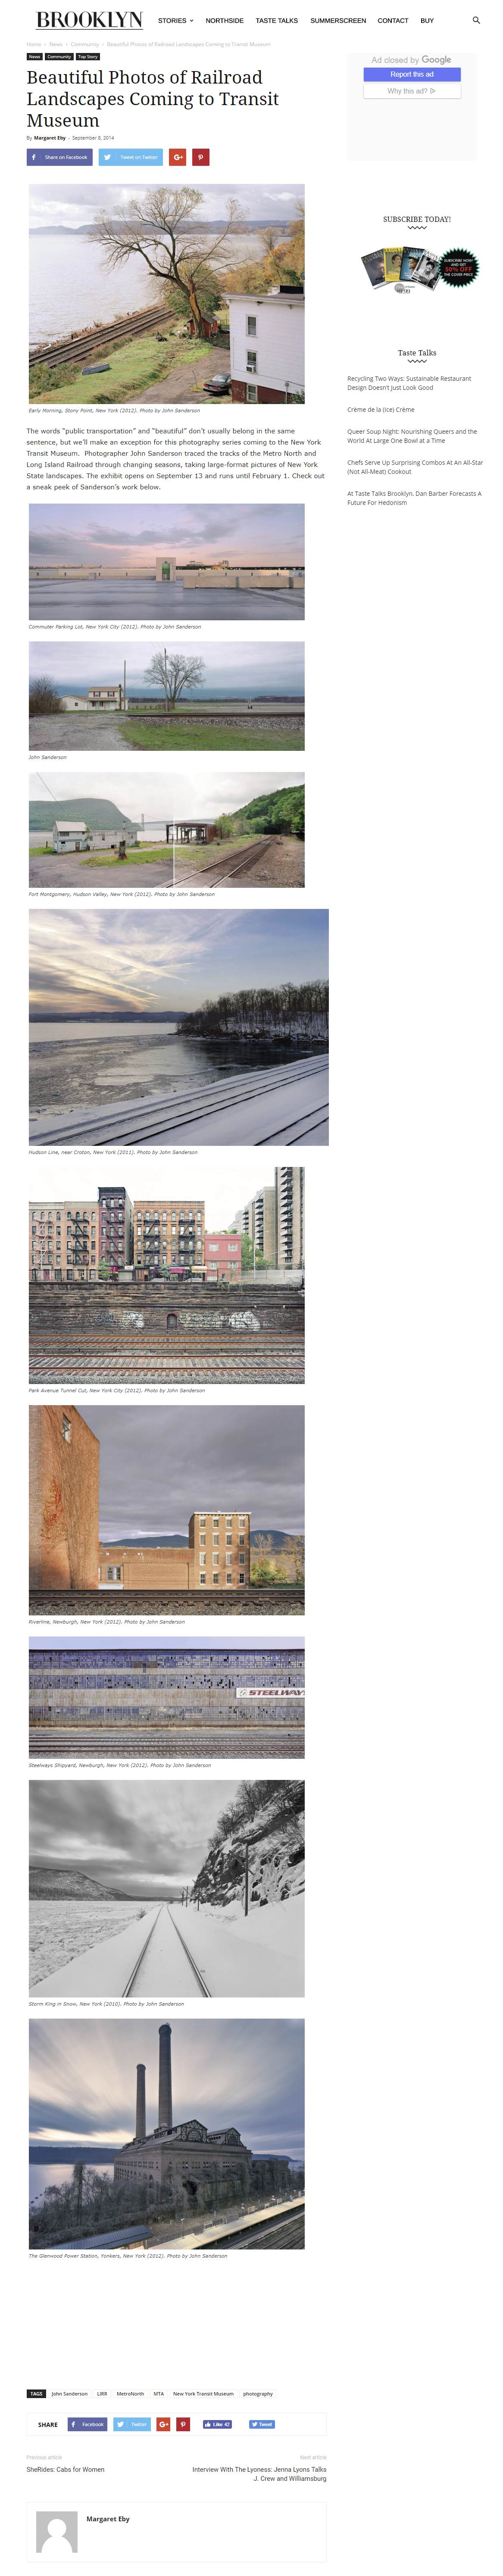 09-08-2014_Beautiful Photos of Railroad Landscapes Coming to Transit Museum_Brooklyn Magazine.jpg